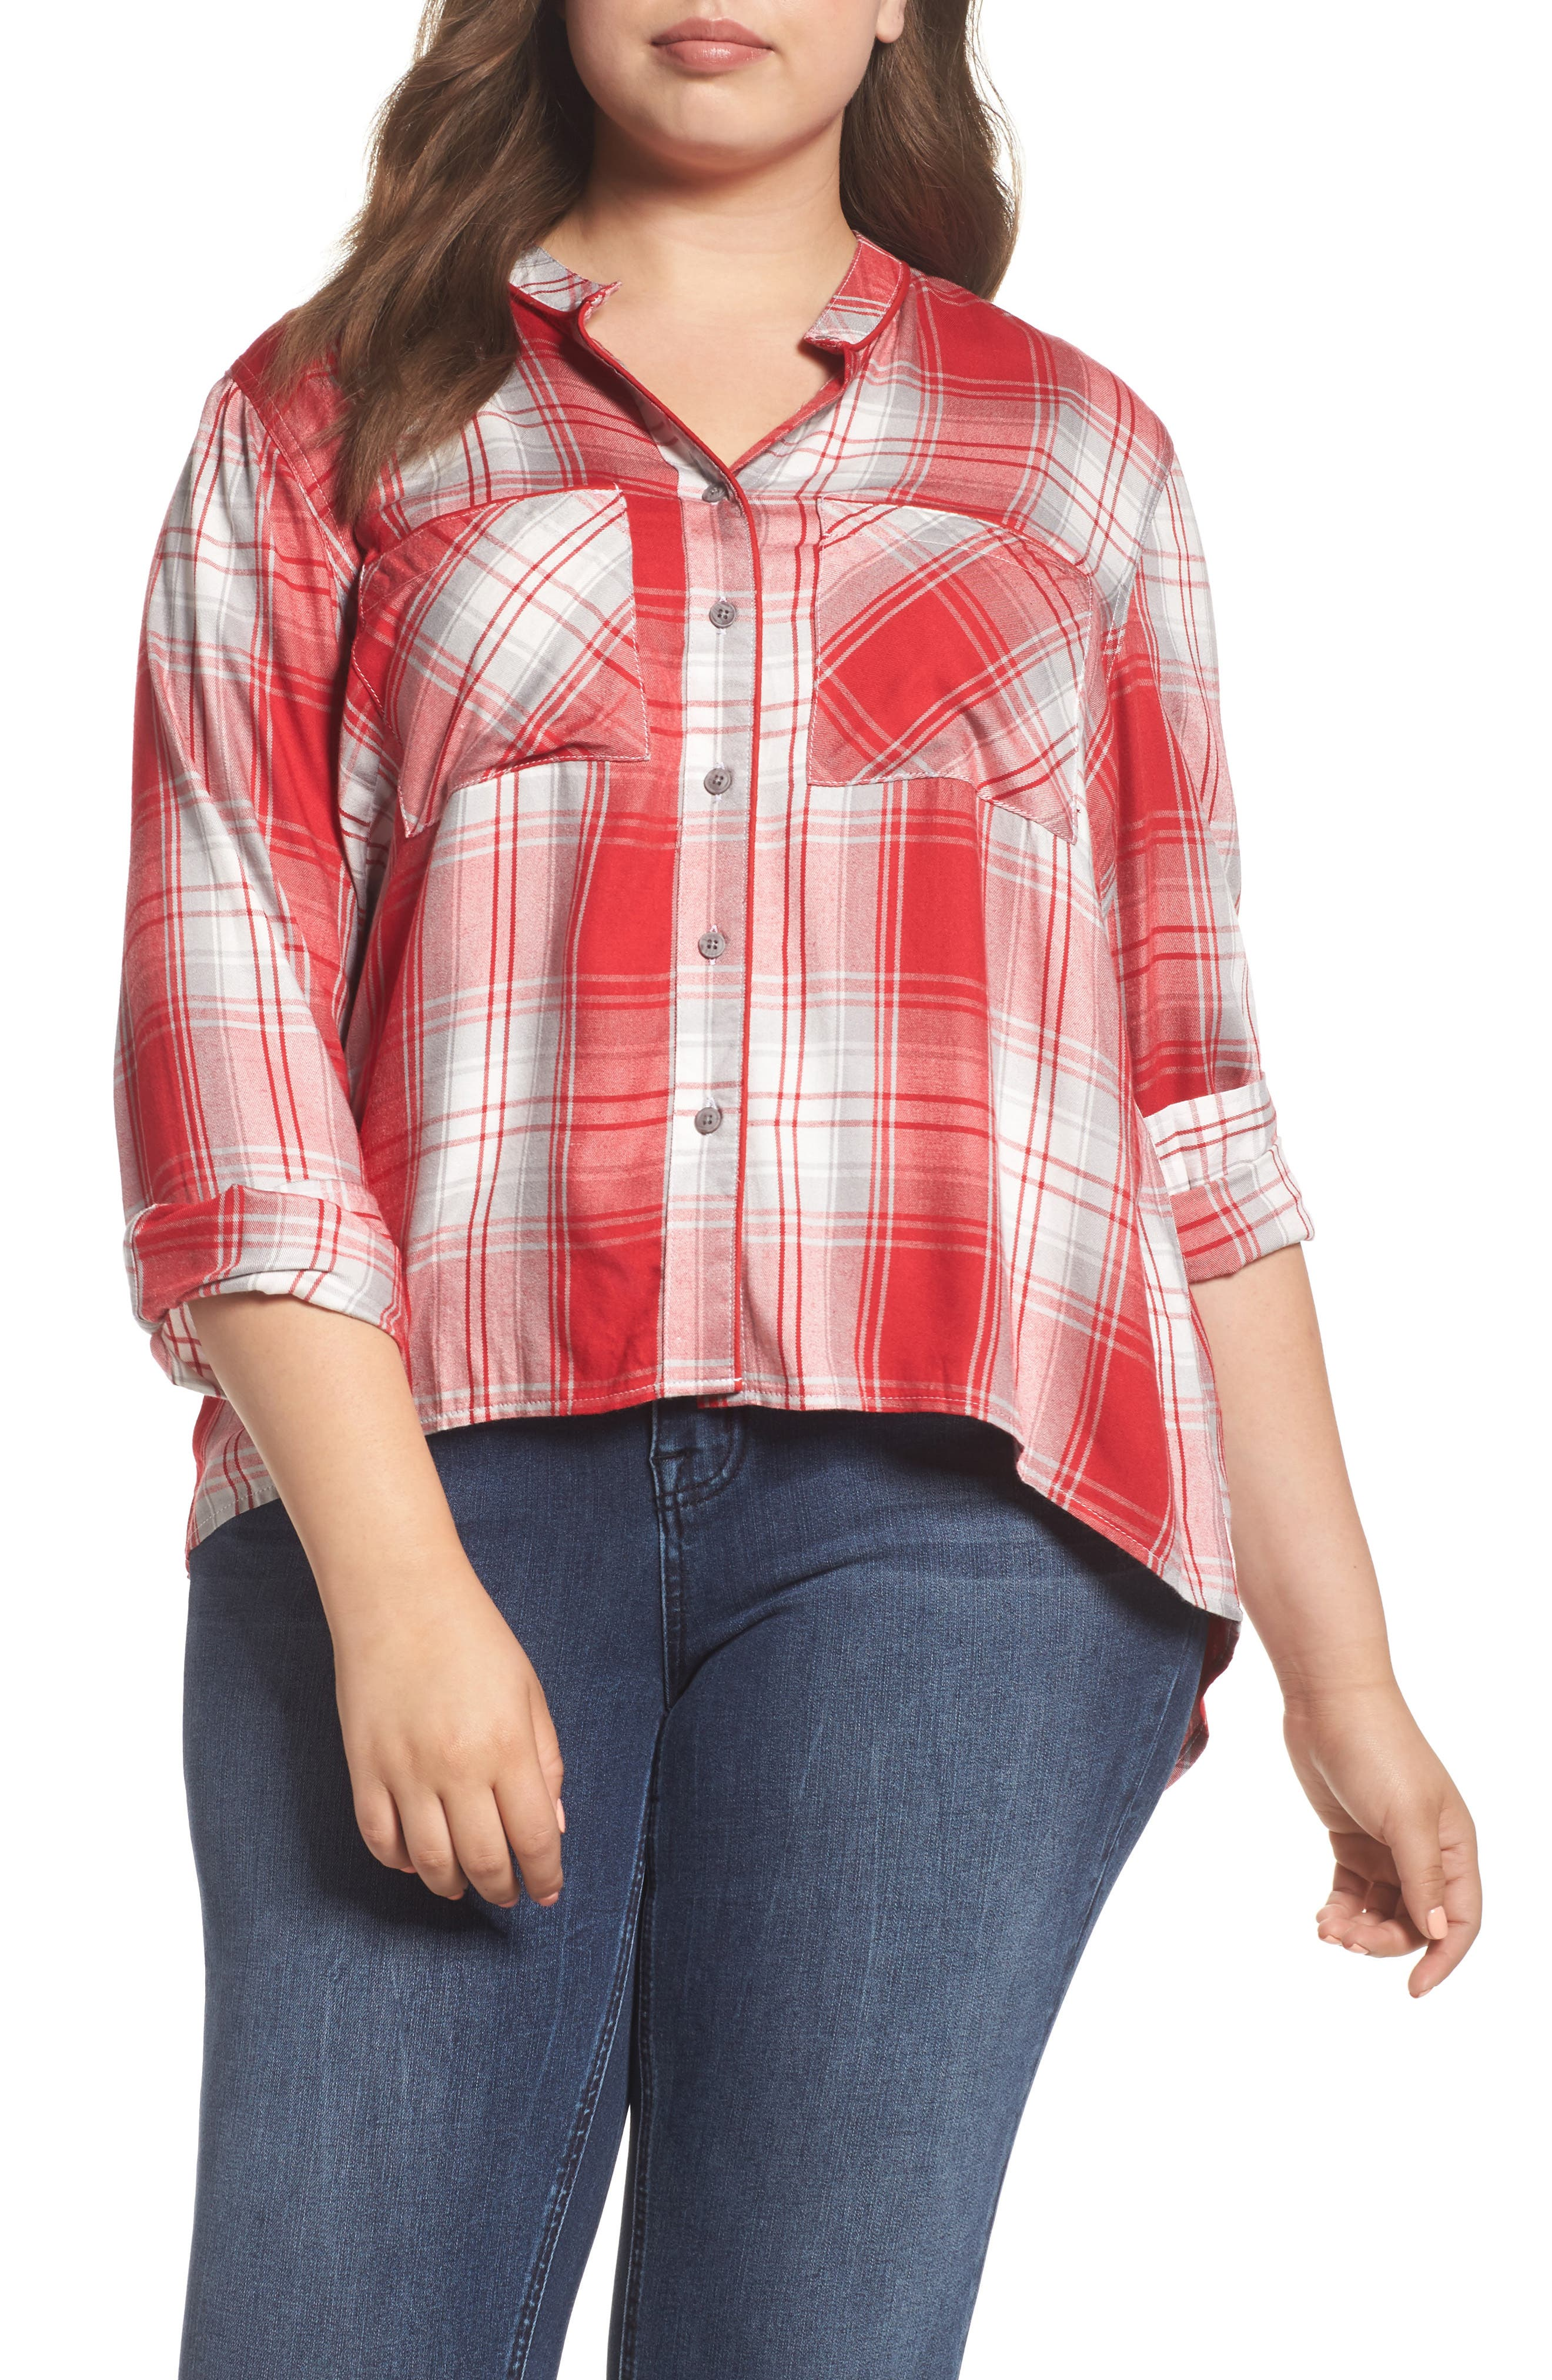 Main Image - Melissa McCarthy Seven7 Plaid Shirt (Plus Size)